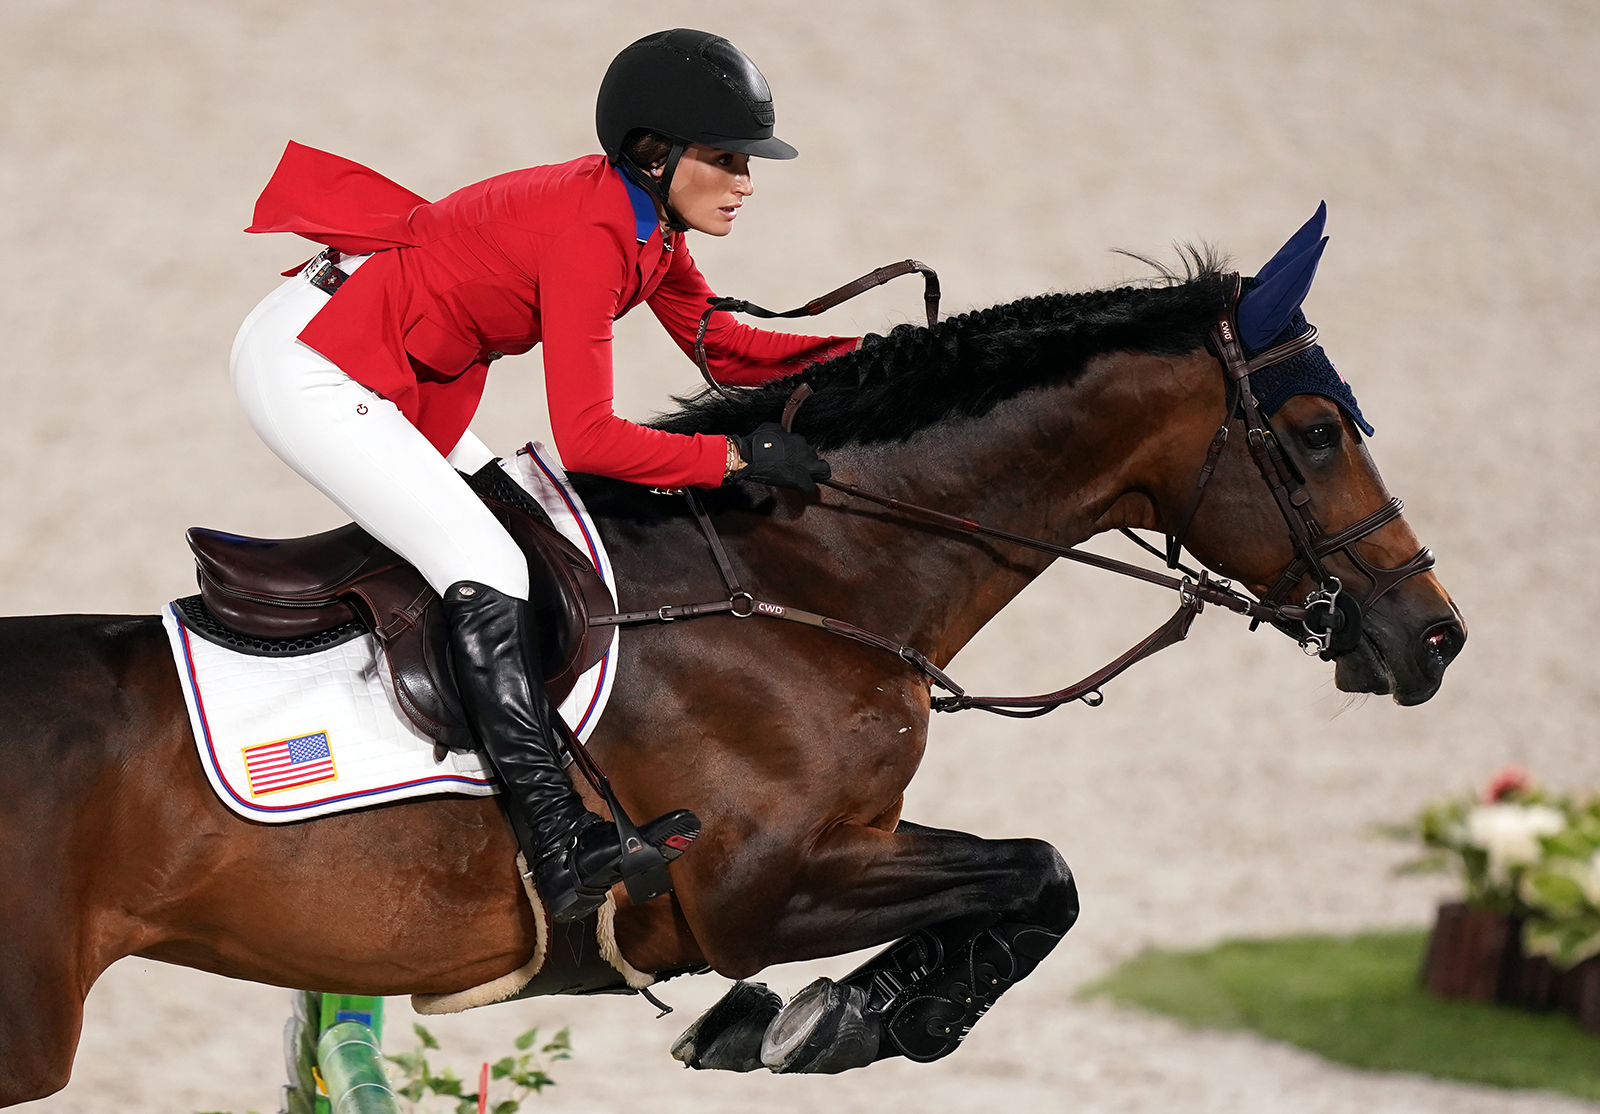 Jessica Springsteen of Team USA rides horse Don Juan Van De Donkhoeve during the Jumping Team Final at the Equestrian Park on the fifteenth day of the Tokyo 2020 Olympic Games on August 7, in Tokyo.